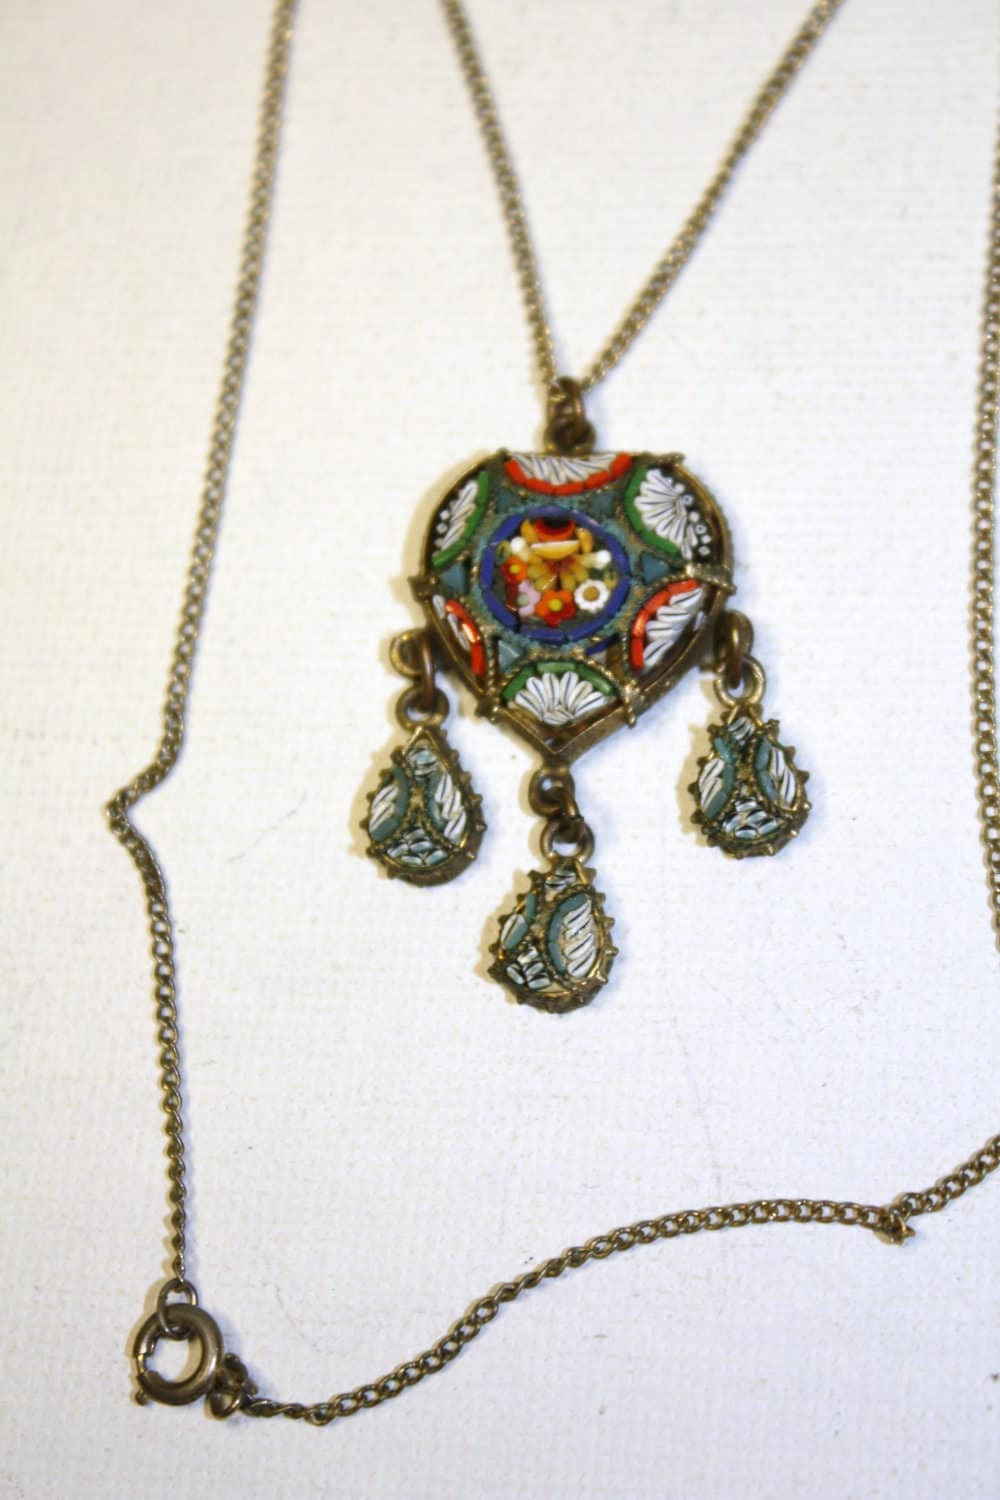 deco necklace micro mosaic 1920s jewelry italy